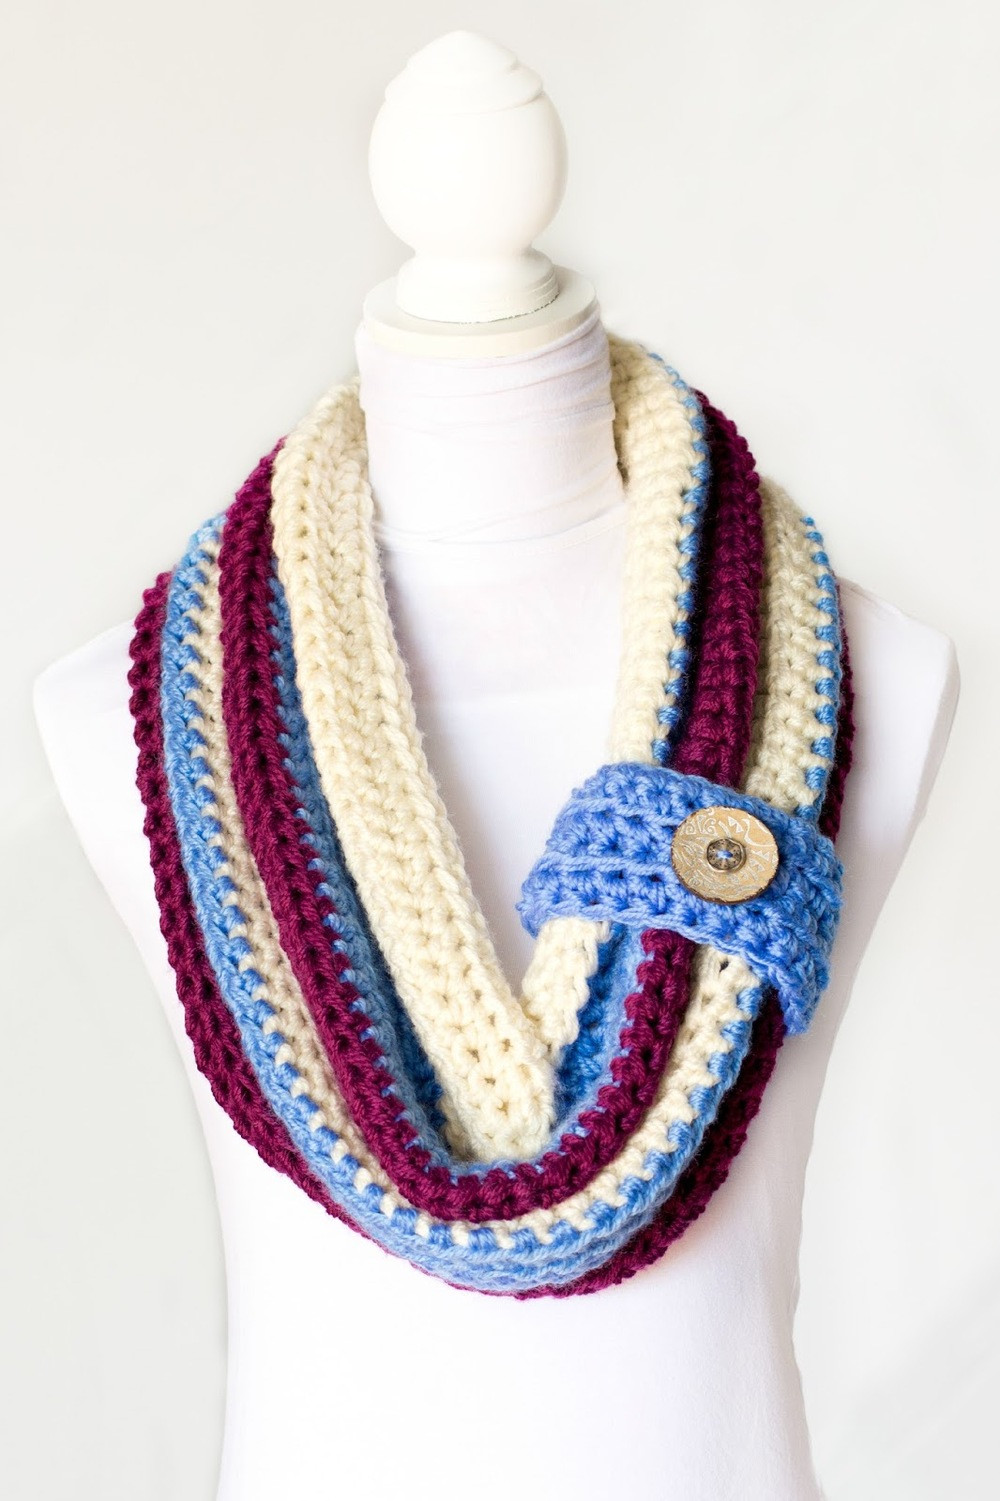 Crochet Cowl Scarf Luxury Varsity button Scarf Of Awesome 42 Pics Crochet Cowl Scarf